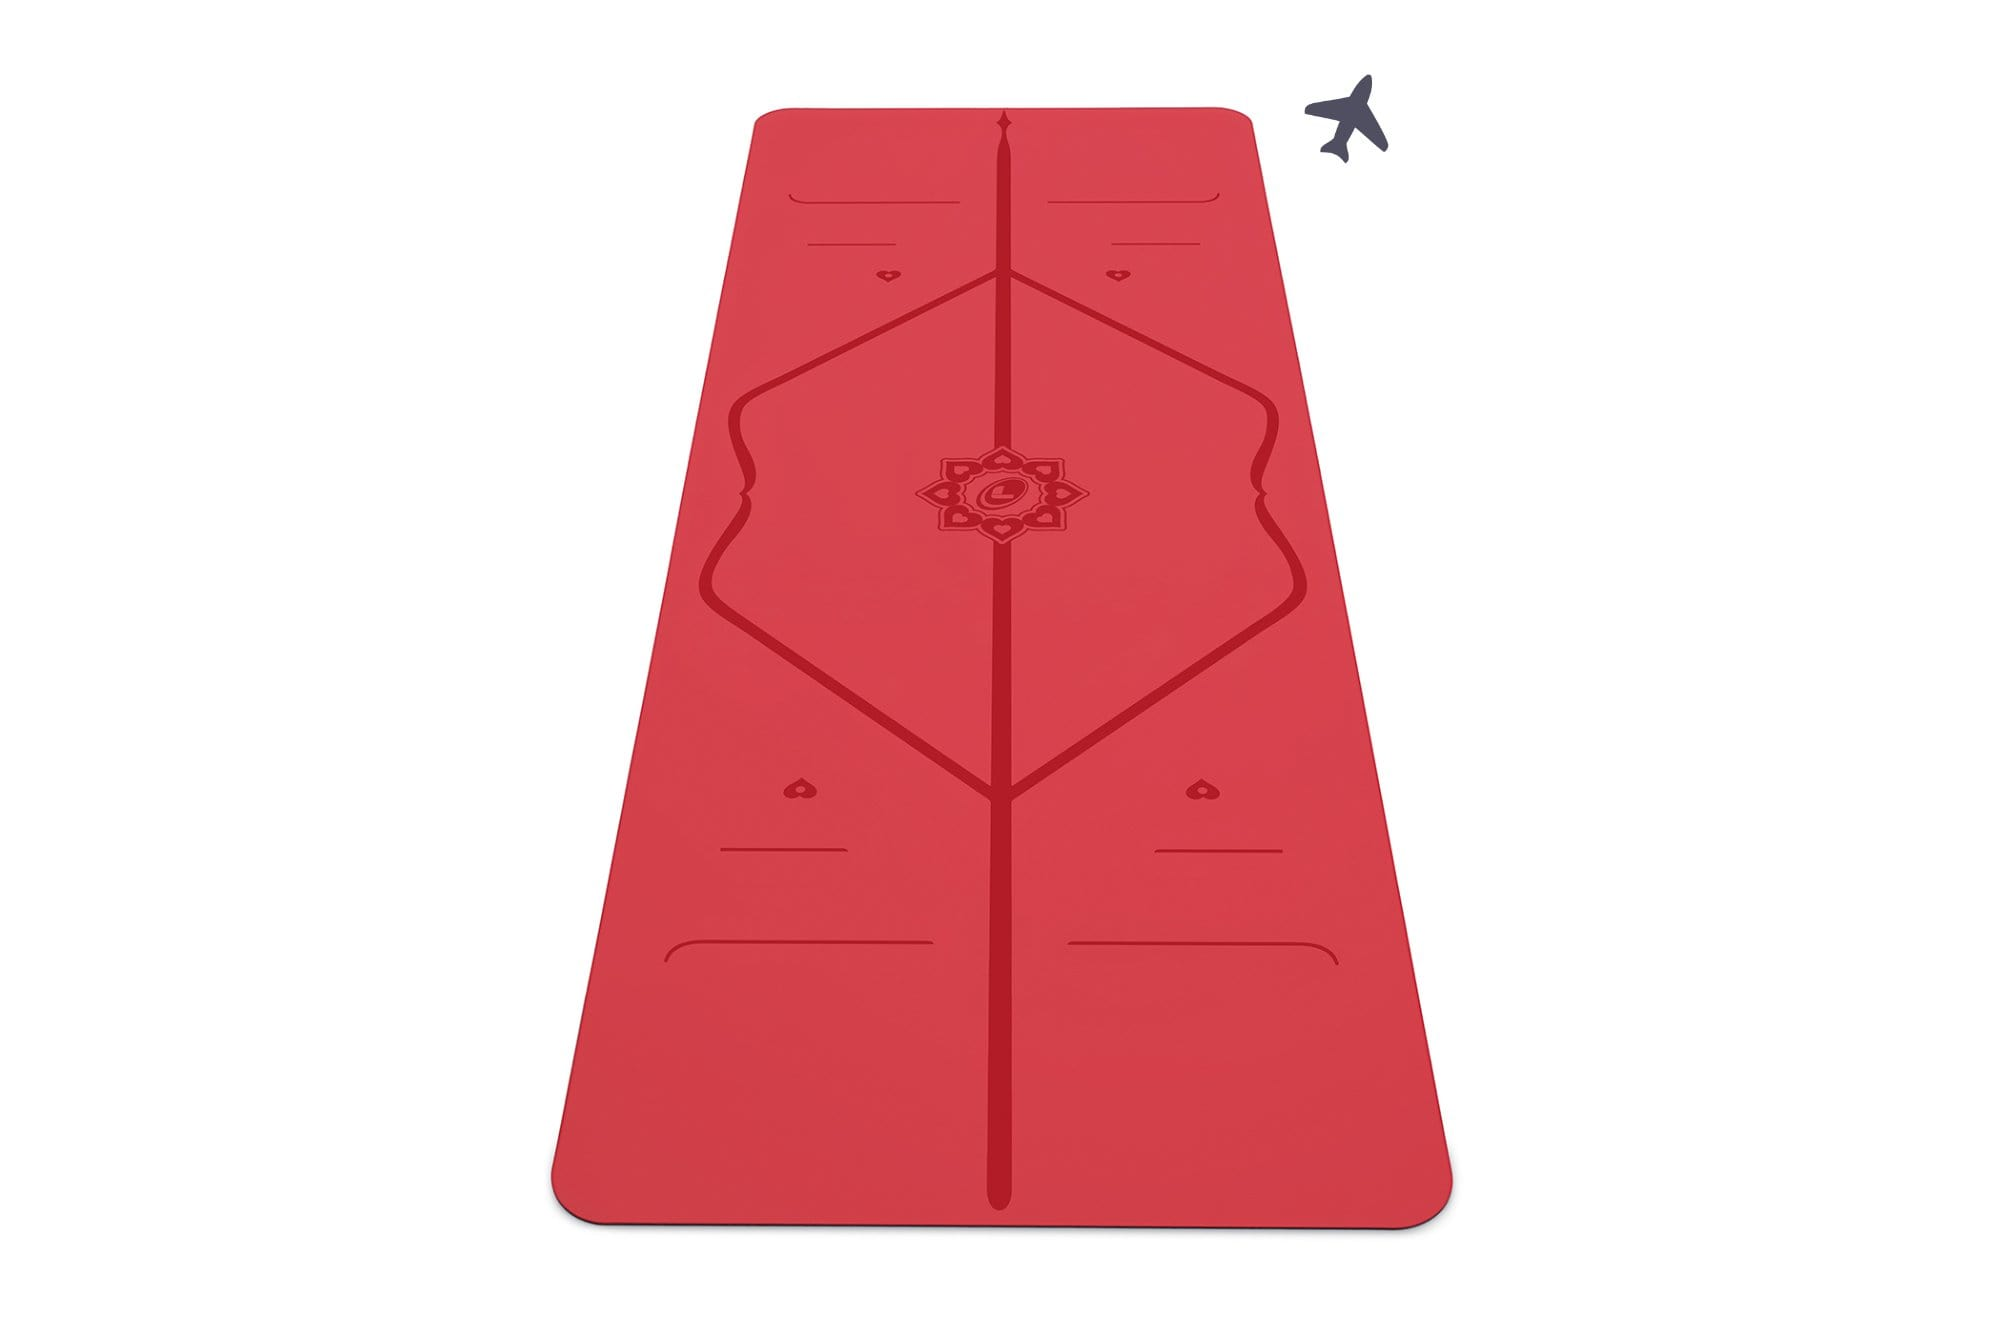 Portrait view of love travel Yoga mat from Liforme